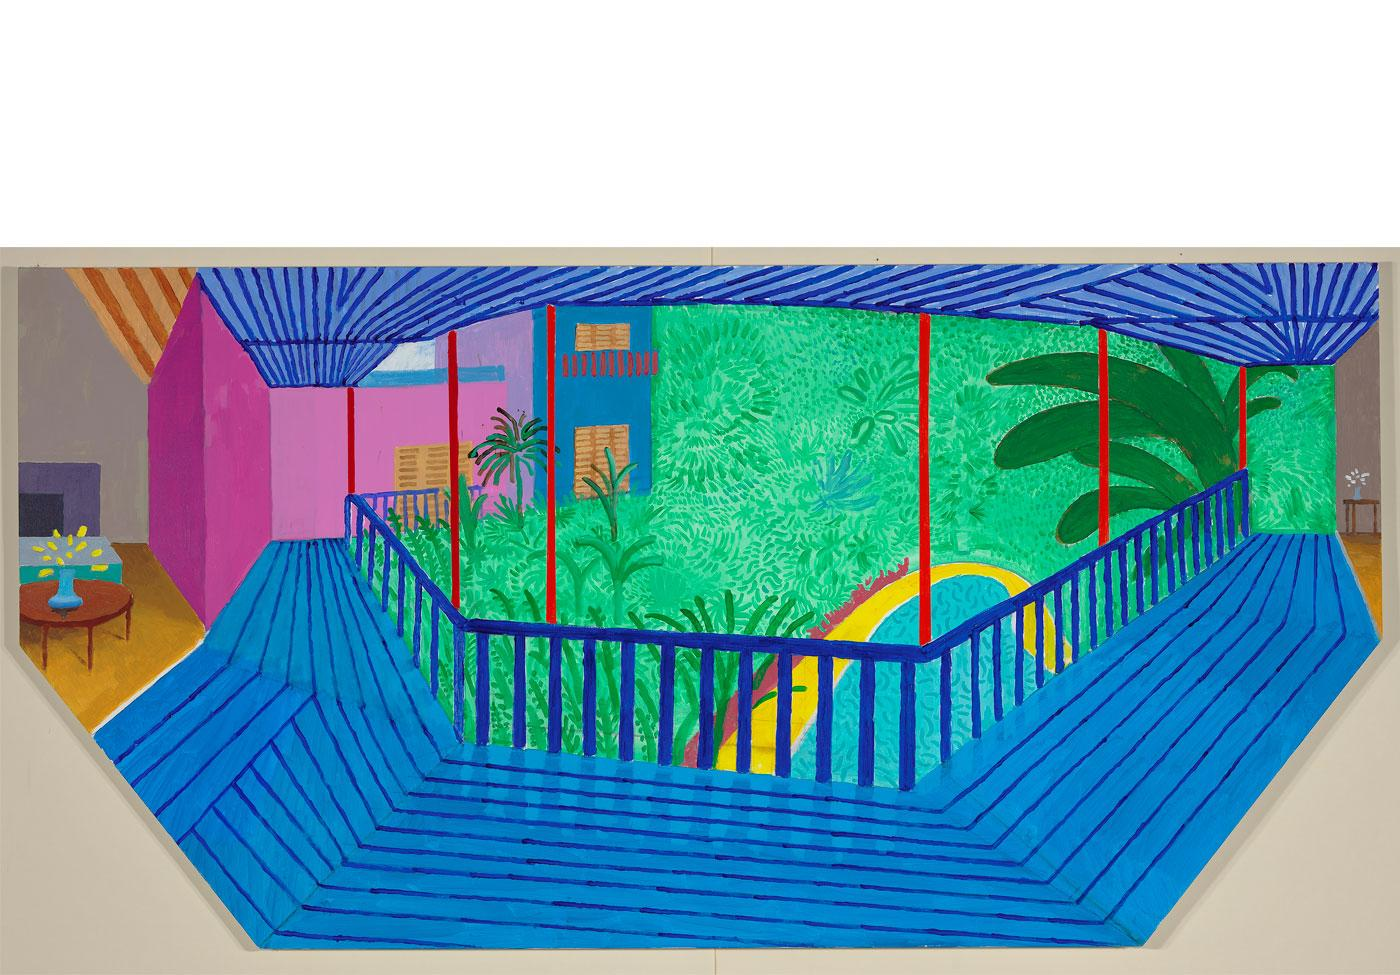 A Bigger Interior with Blue Terrace by David Hockney, 2017.